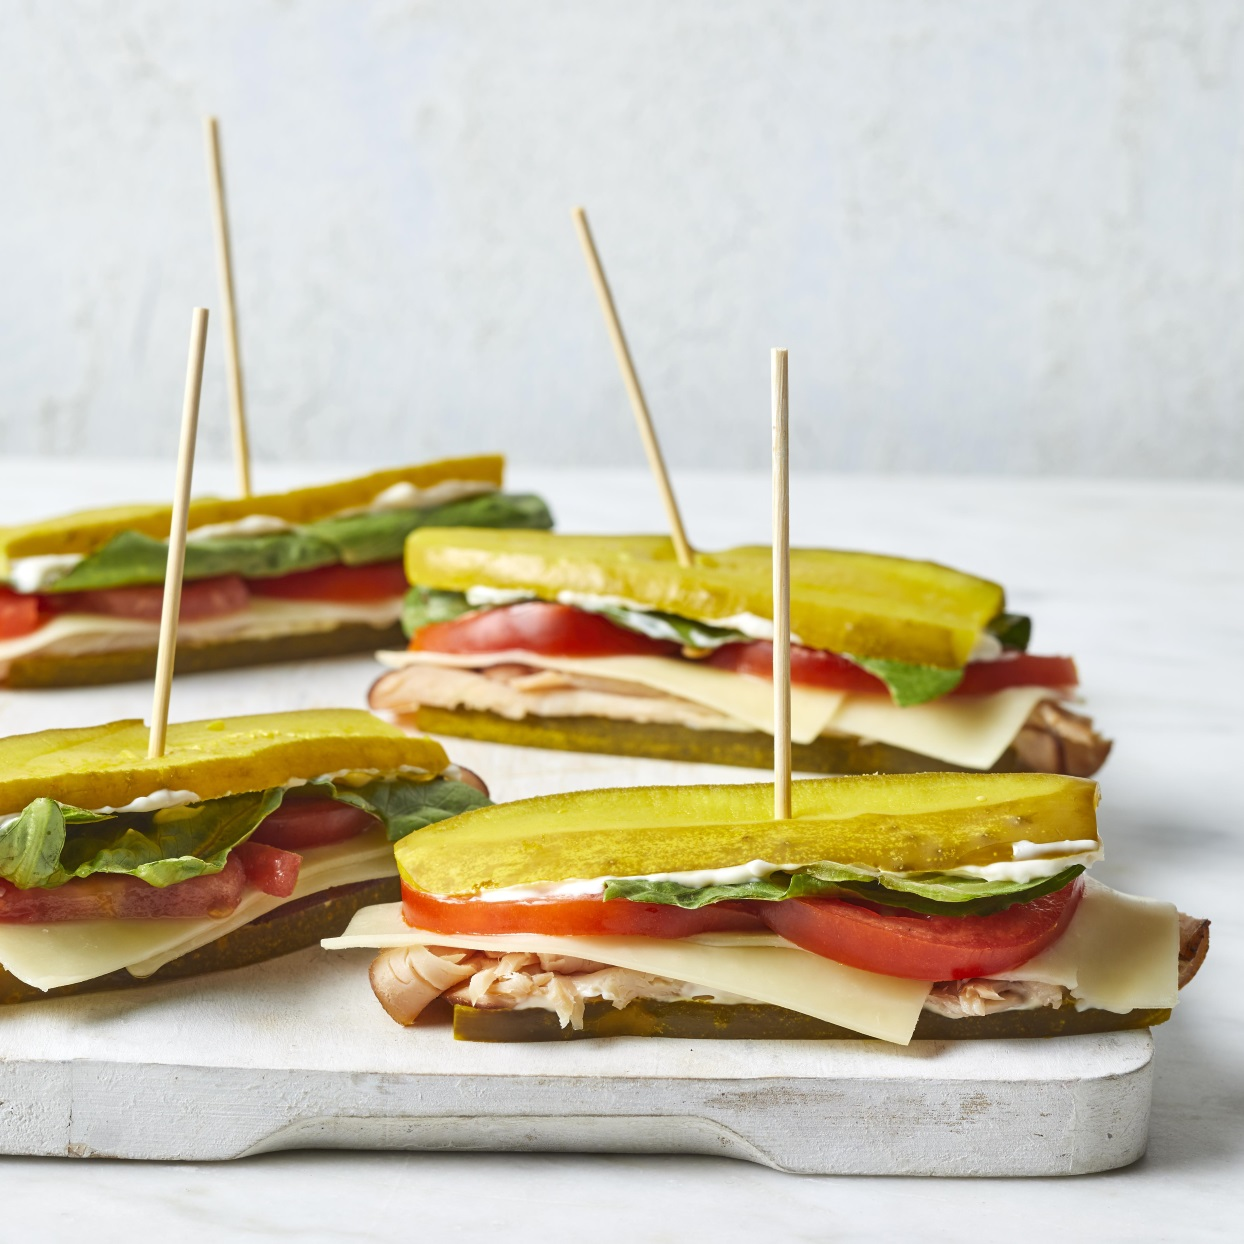 Pickle Sub Sandwiches with Turkey & Cheddar Trusted Brands